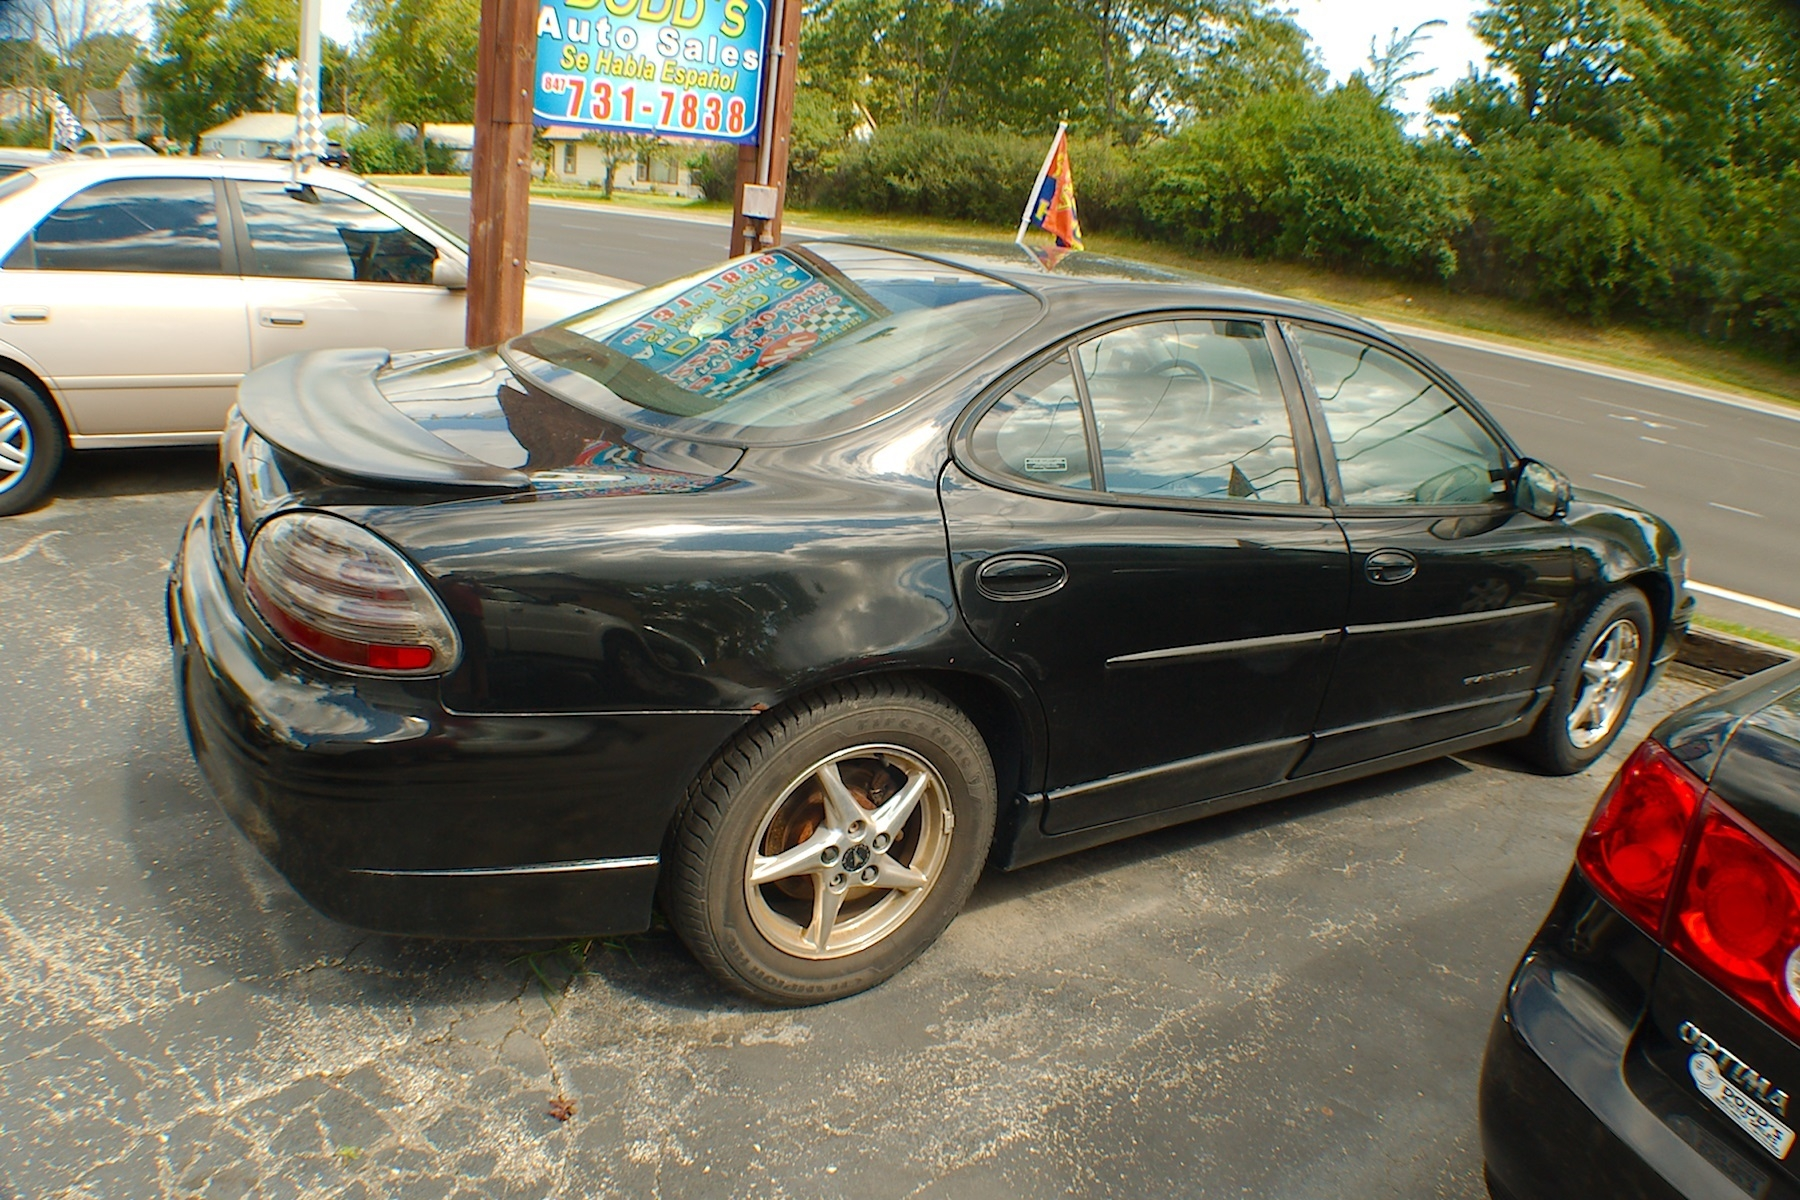 2001 Pontiac Grand Prix Black Sedan Sale Bannockburn Barrington Beach Park